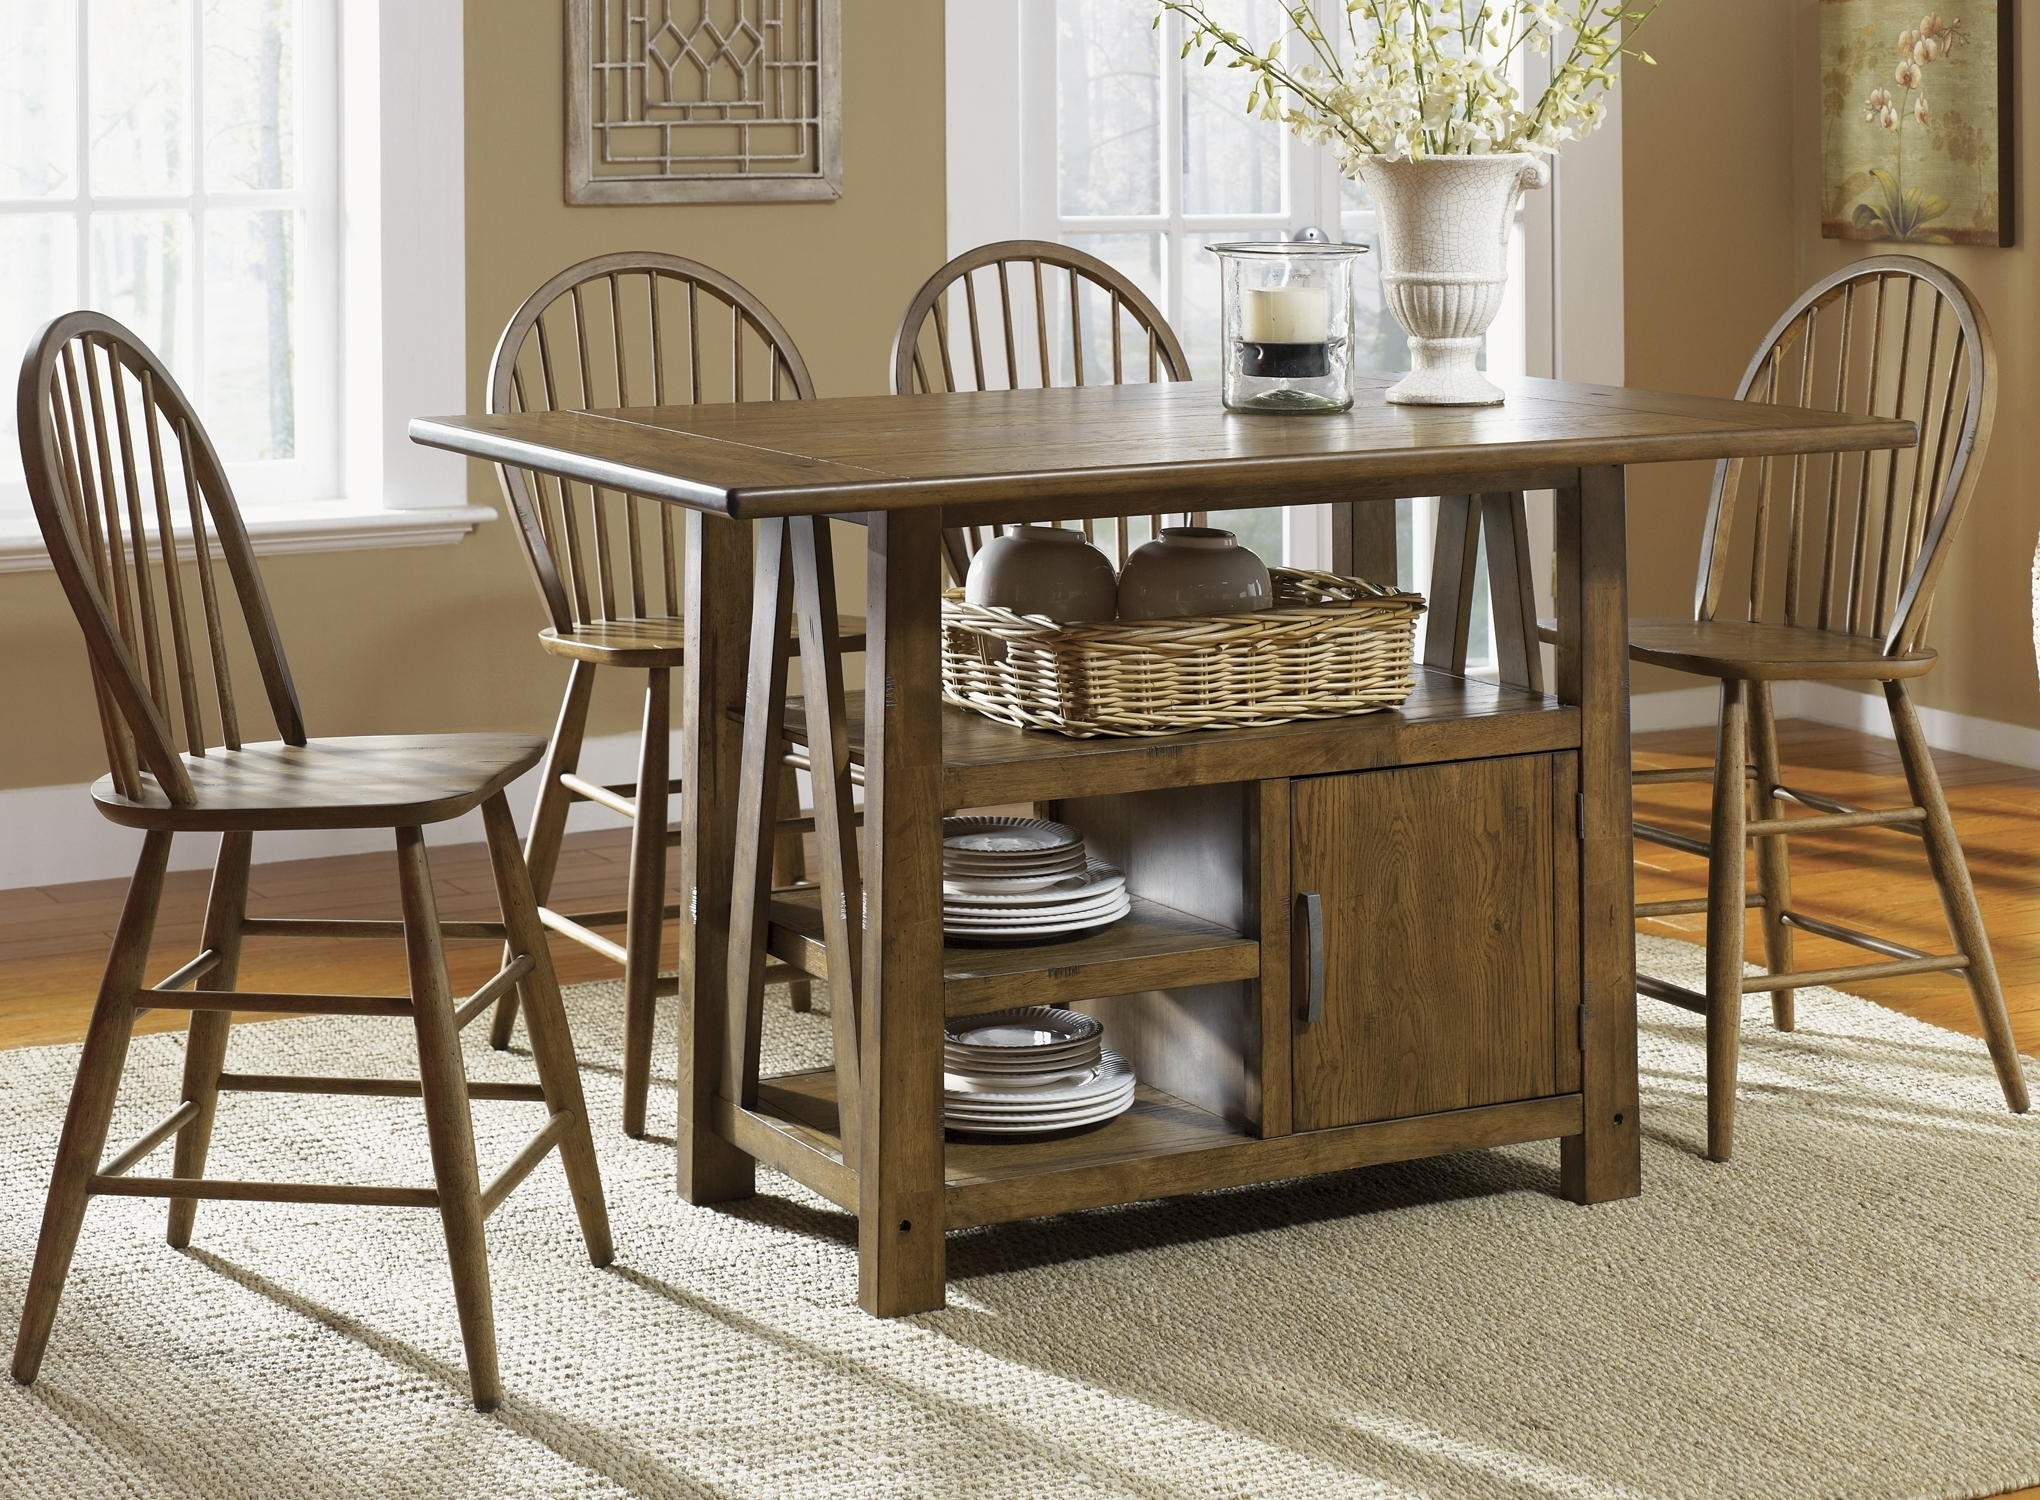 5 Piece Island Pub Table And Windsor Back Counter Chairs Set In Preferred Market 5 Piece Counter Sets (View 2 of 25)